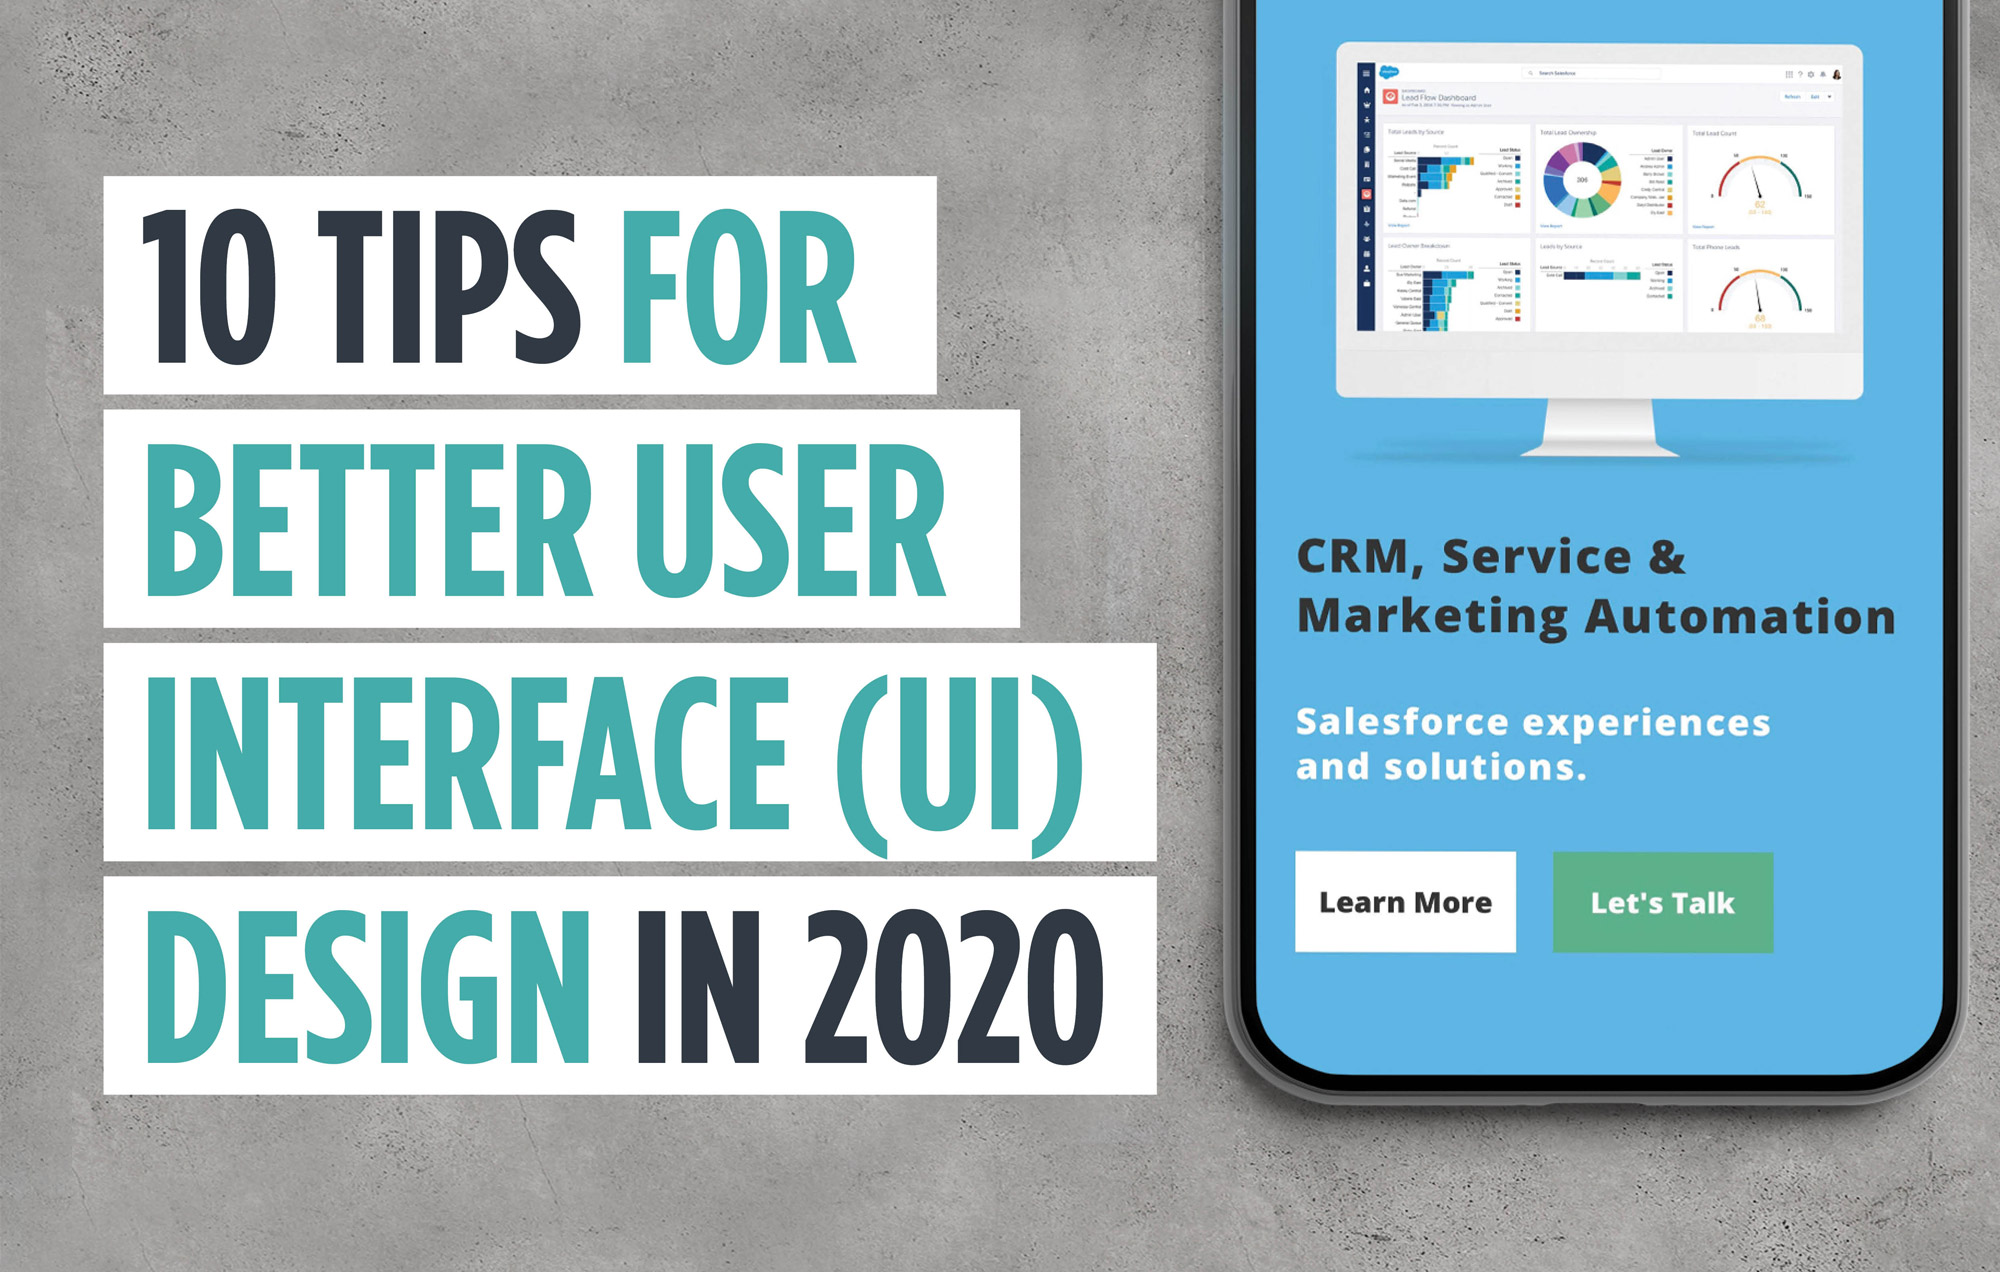 User Interface tips for 2020